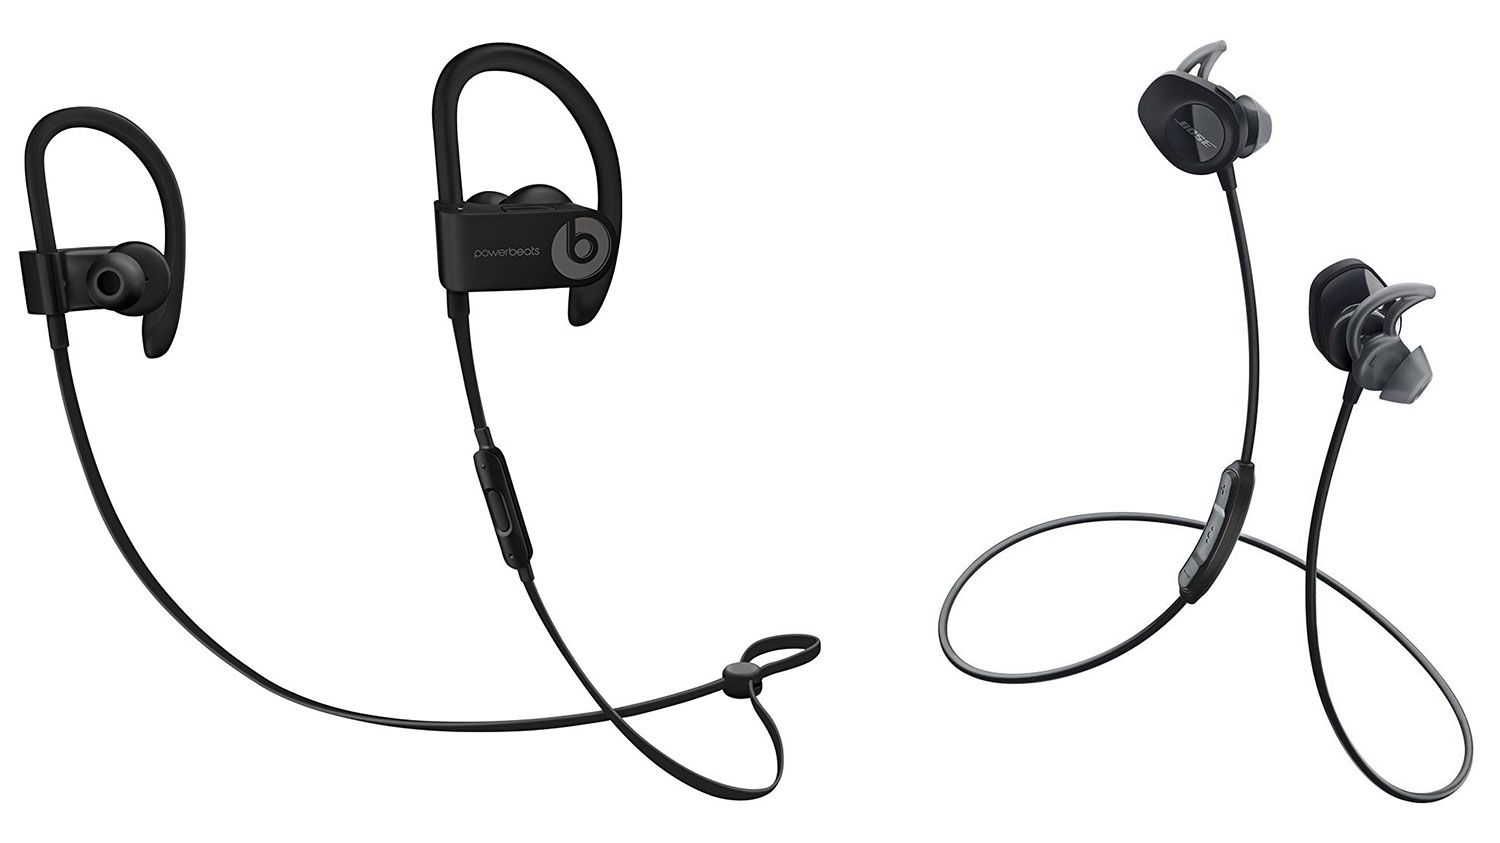 Bose Vs Dr Dre Wireless Headphones